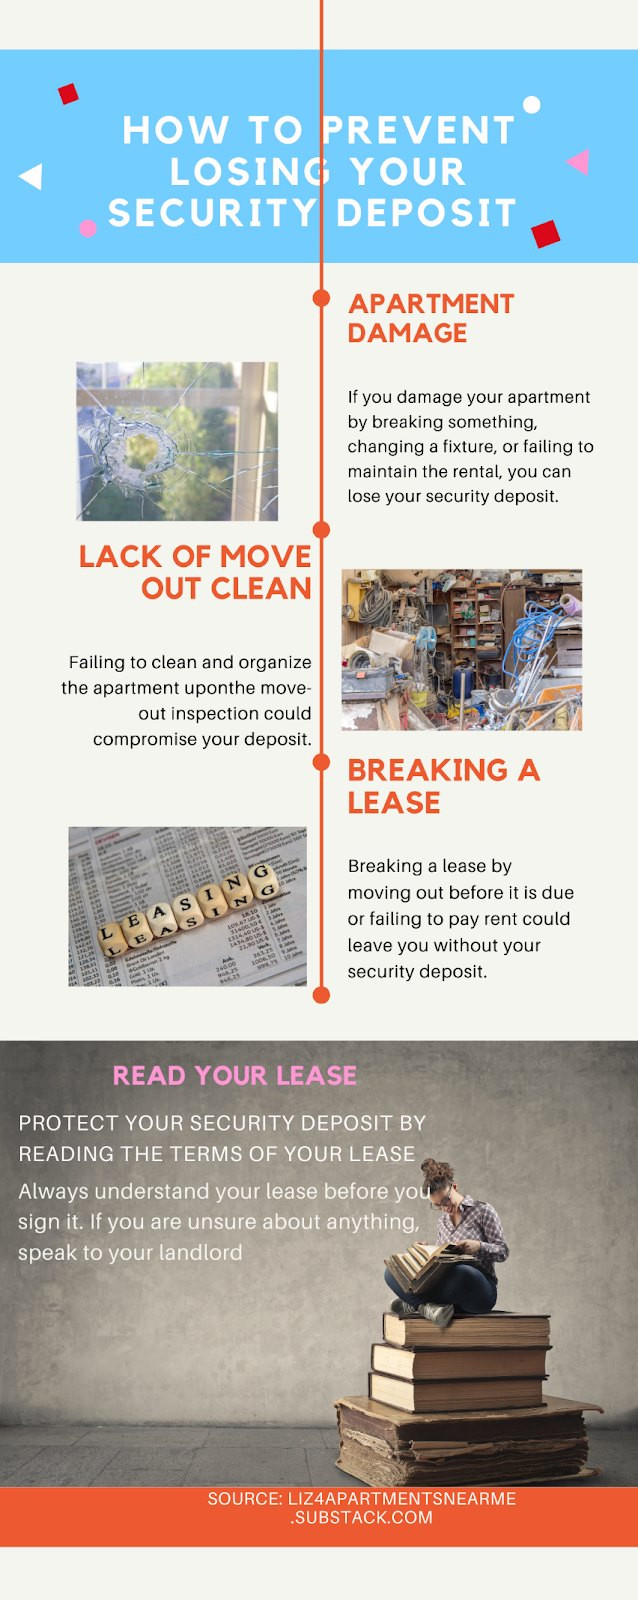 Infographic Explaining How to Prevent Losing Your Security Deposit.